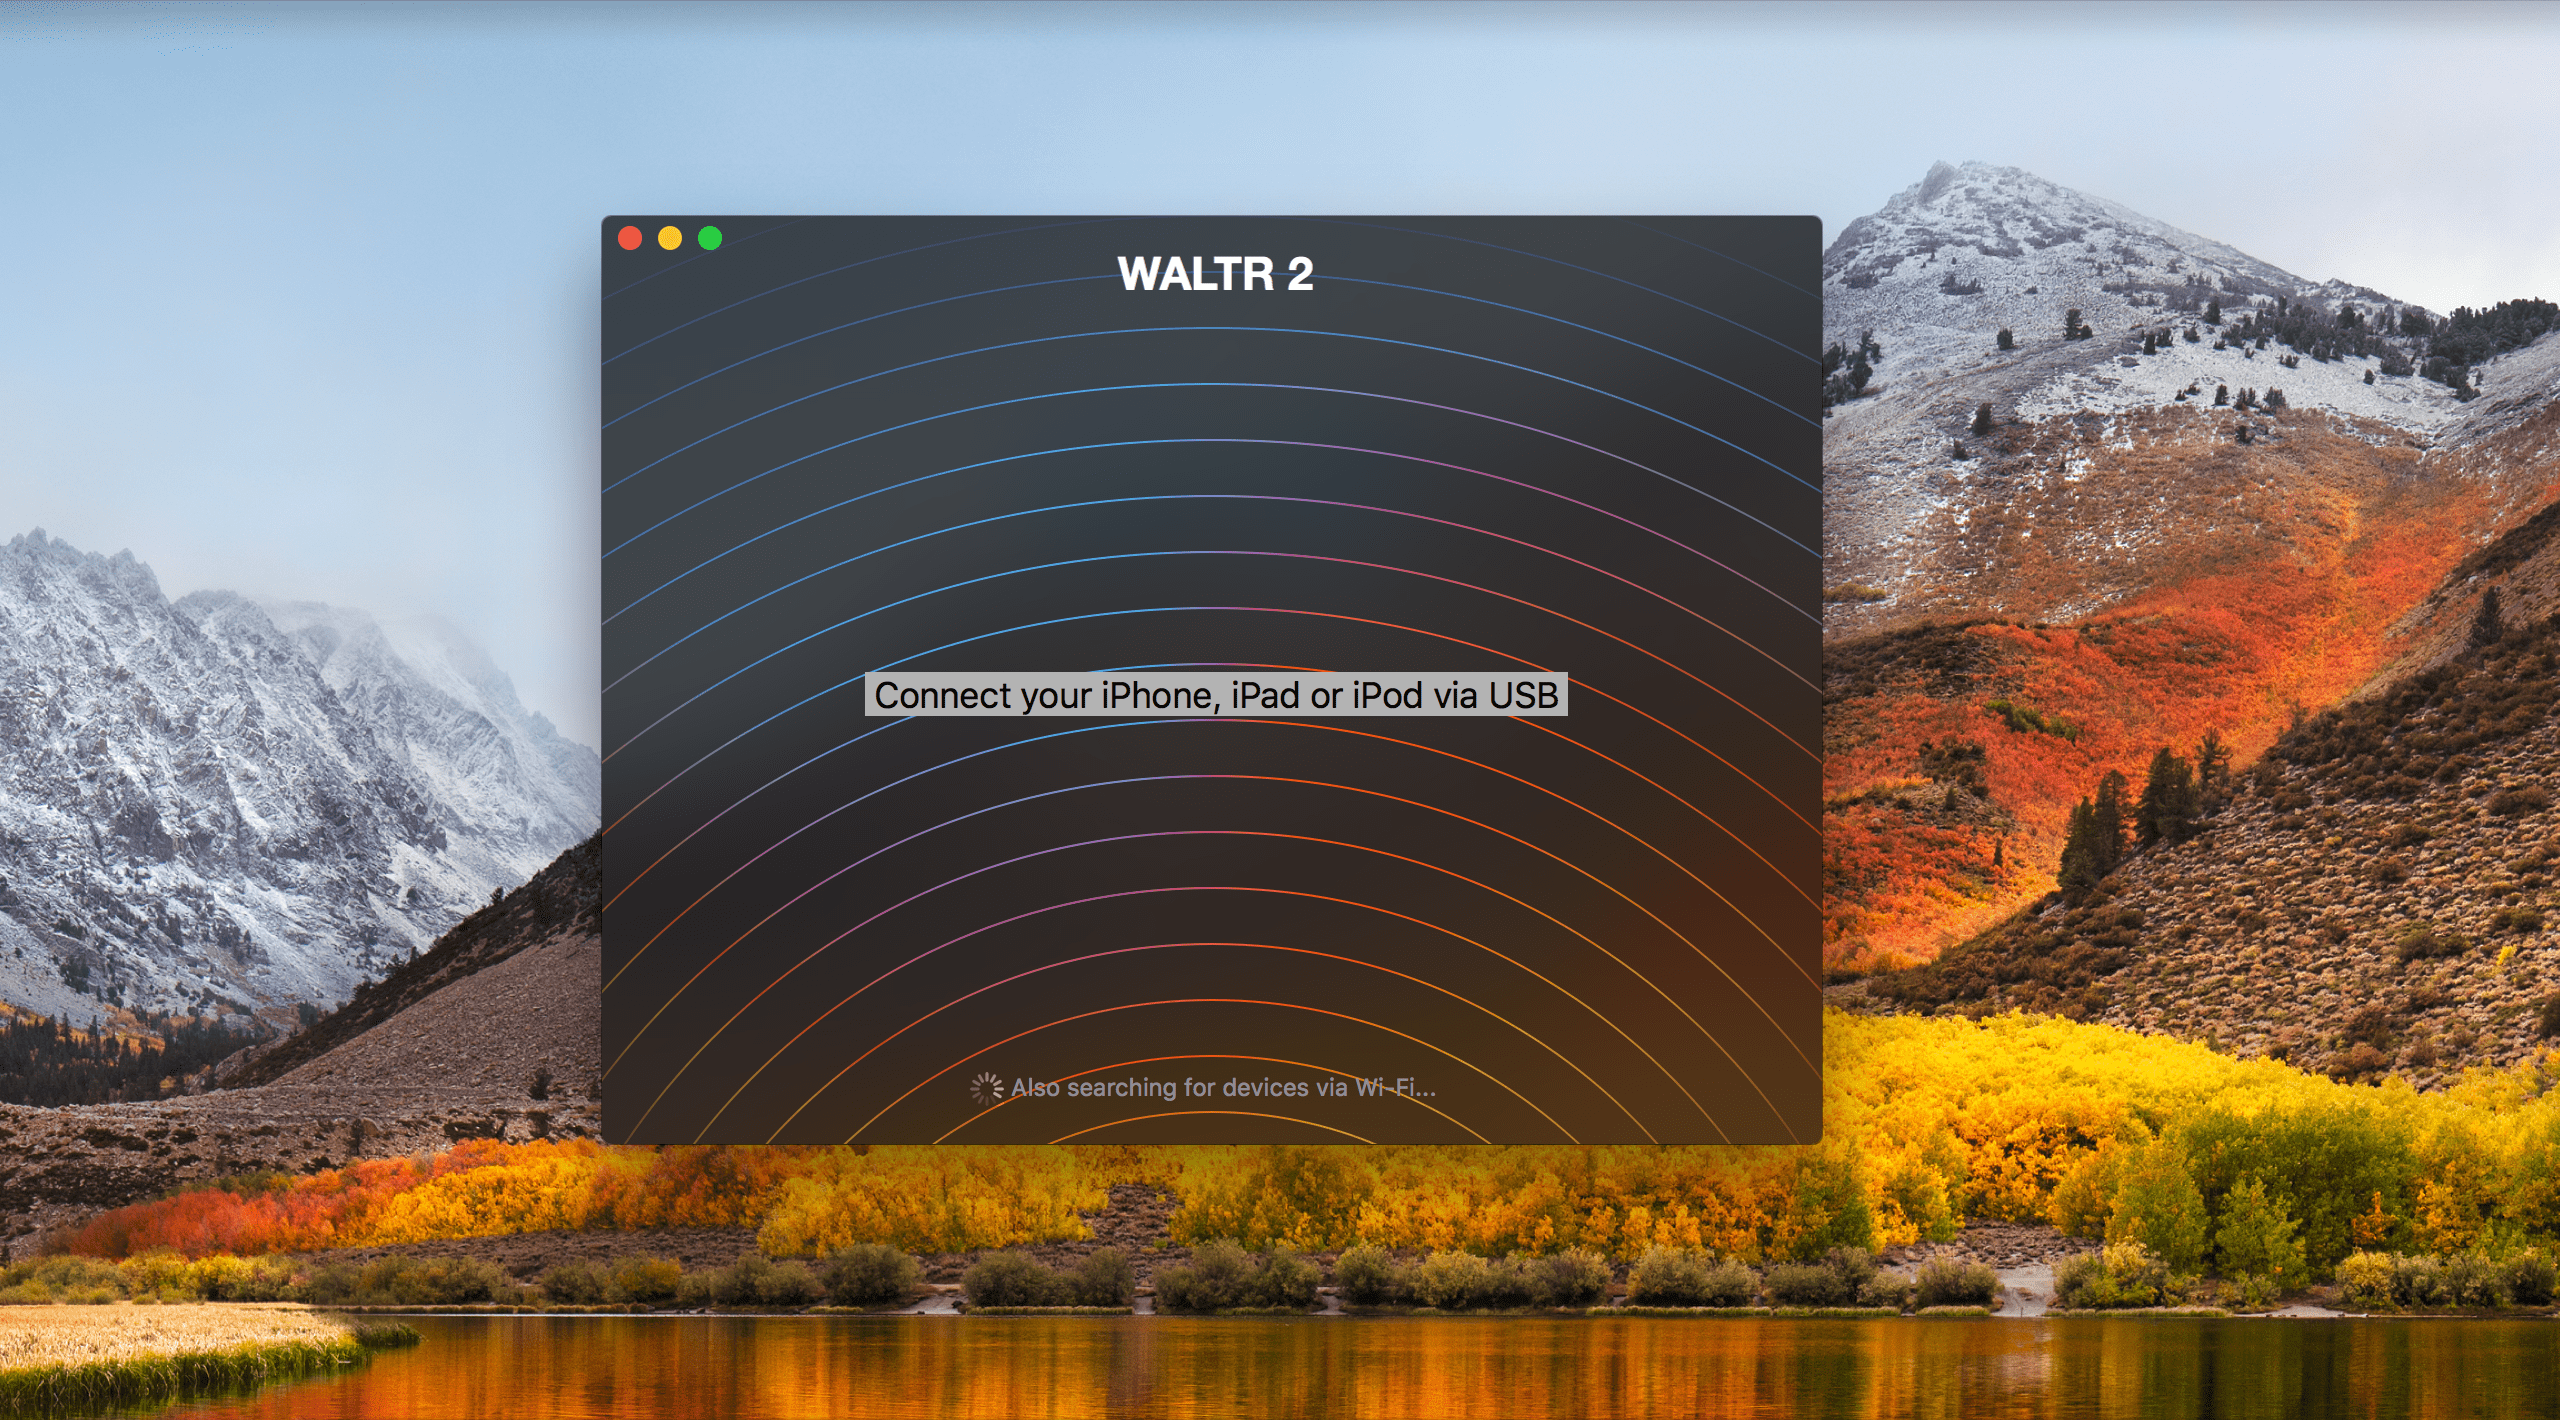 if you can't add music to iPhone, WALTR 2 is a perfect iTunes alternative